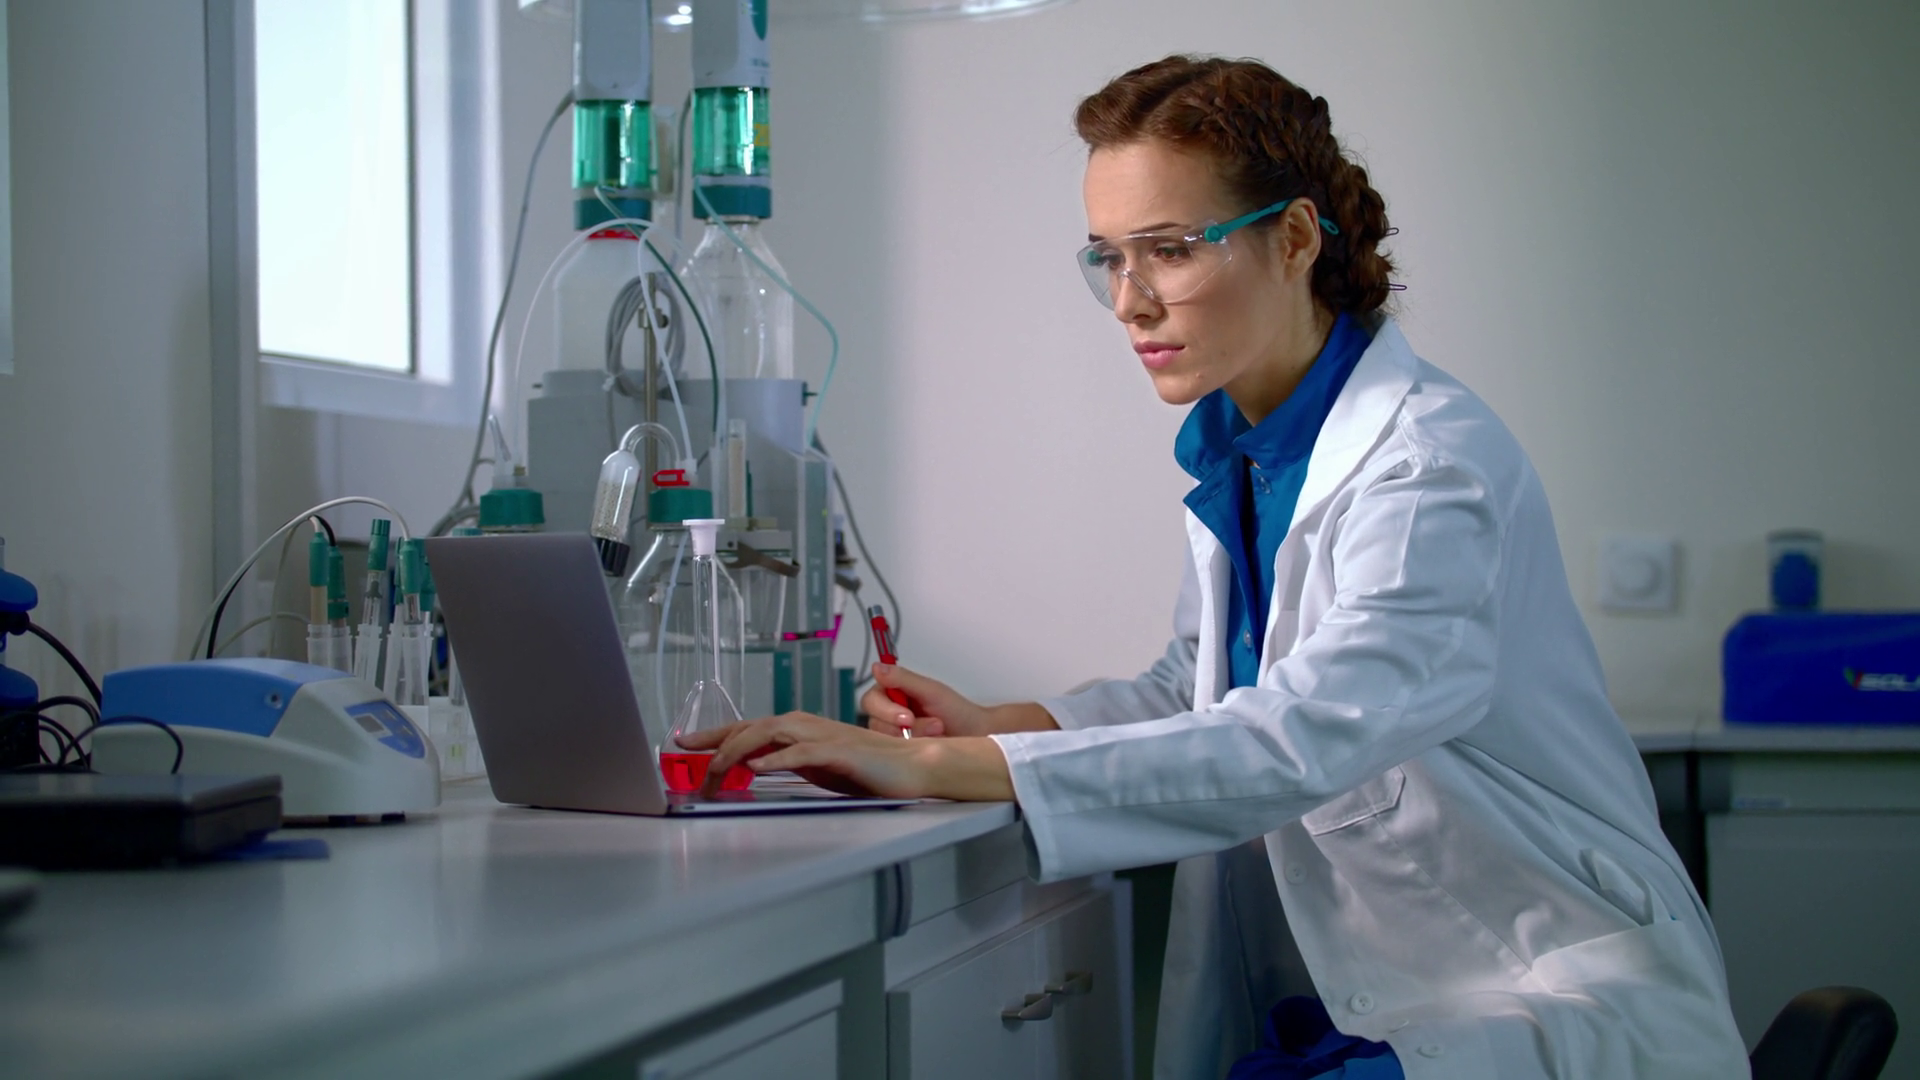 young-scientist-writing-down-results-of-research-laboratory-scientist-working-in-lab-female-scientist-in-lab-doctor-working-in-lab-with-modern-equipment-lab-woman-analyzing-test-result_sjmkpaky_x_thumbnail-full10.png